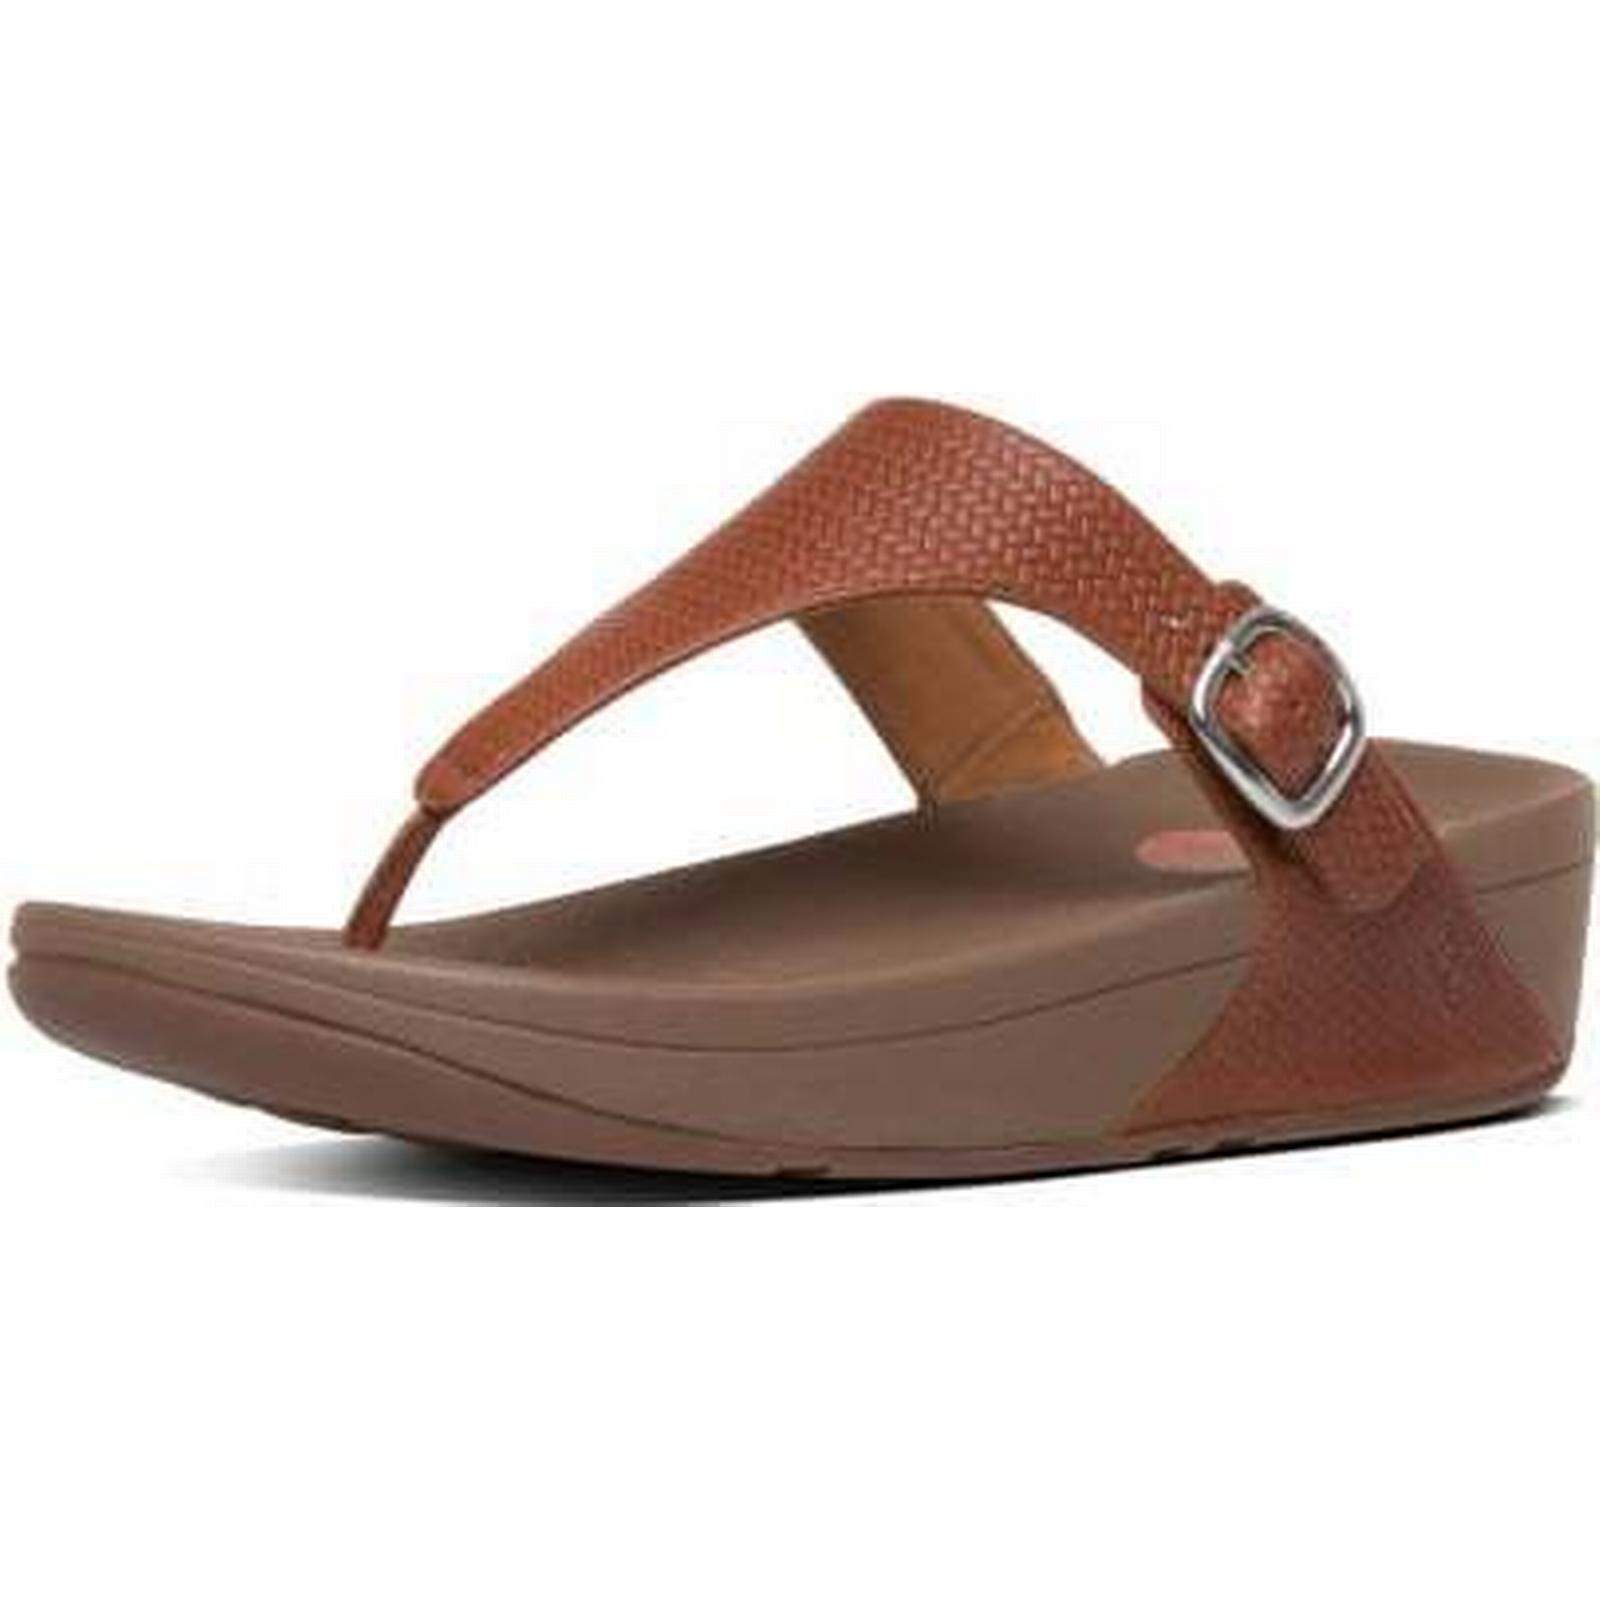 FitFlop THE SKINNY FITFLOP THE SKINNY SANDALS Size: Size: SANDALS 3, Colour: DARK TA 296f36